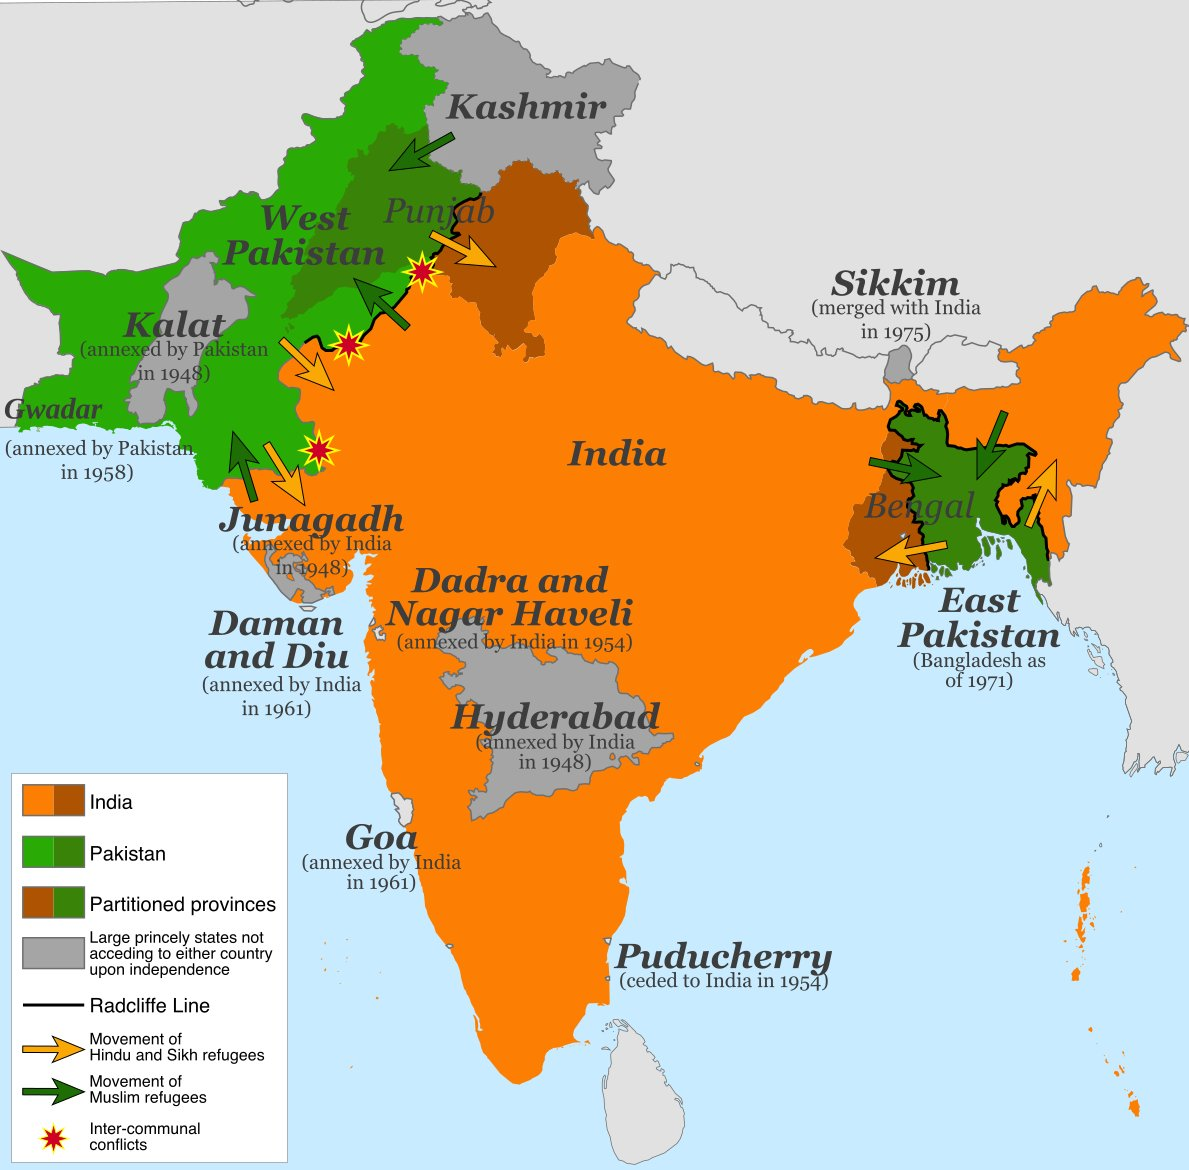 #3June 1947 Cyril Radcliffe appointed chairman of Boundary Commission  #8July 1947 Cyril Radcliffe arrives in Delhi  #13Aug 1947 Cyril Radcliffe submits partition map  #14Aug #15Aug 1947 Pakistan & India divided & declared independent nations  #17Aug 1947 Radcliffe line released. https://t.co/cEp1Ao8IyH